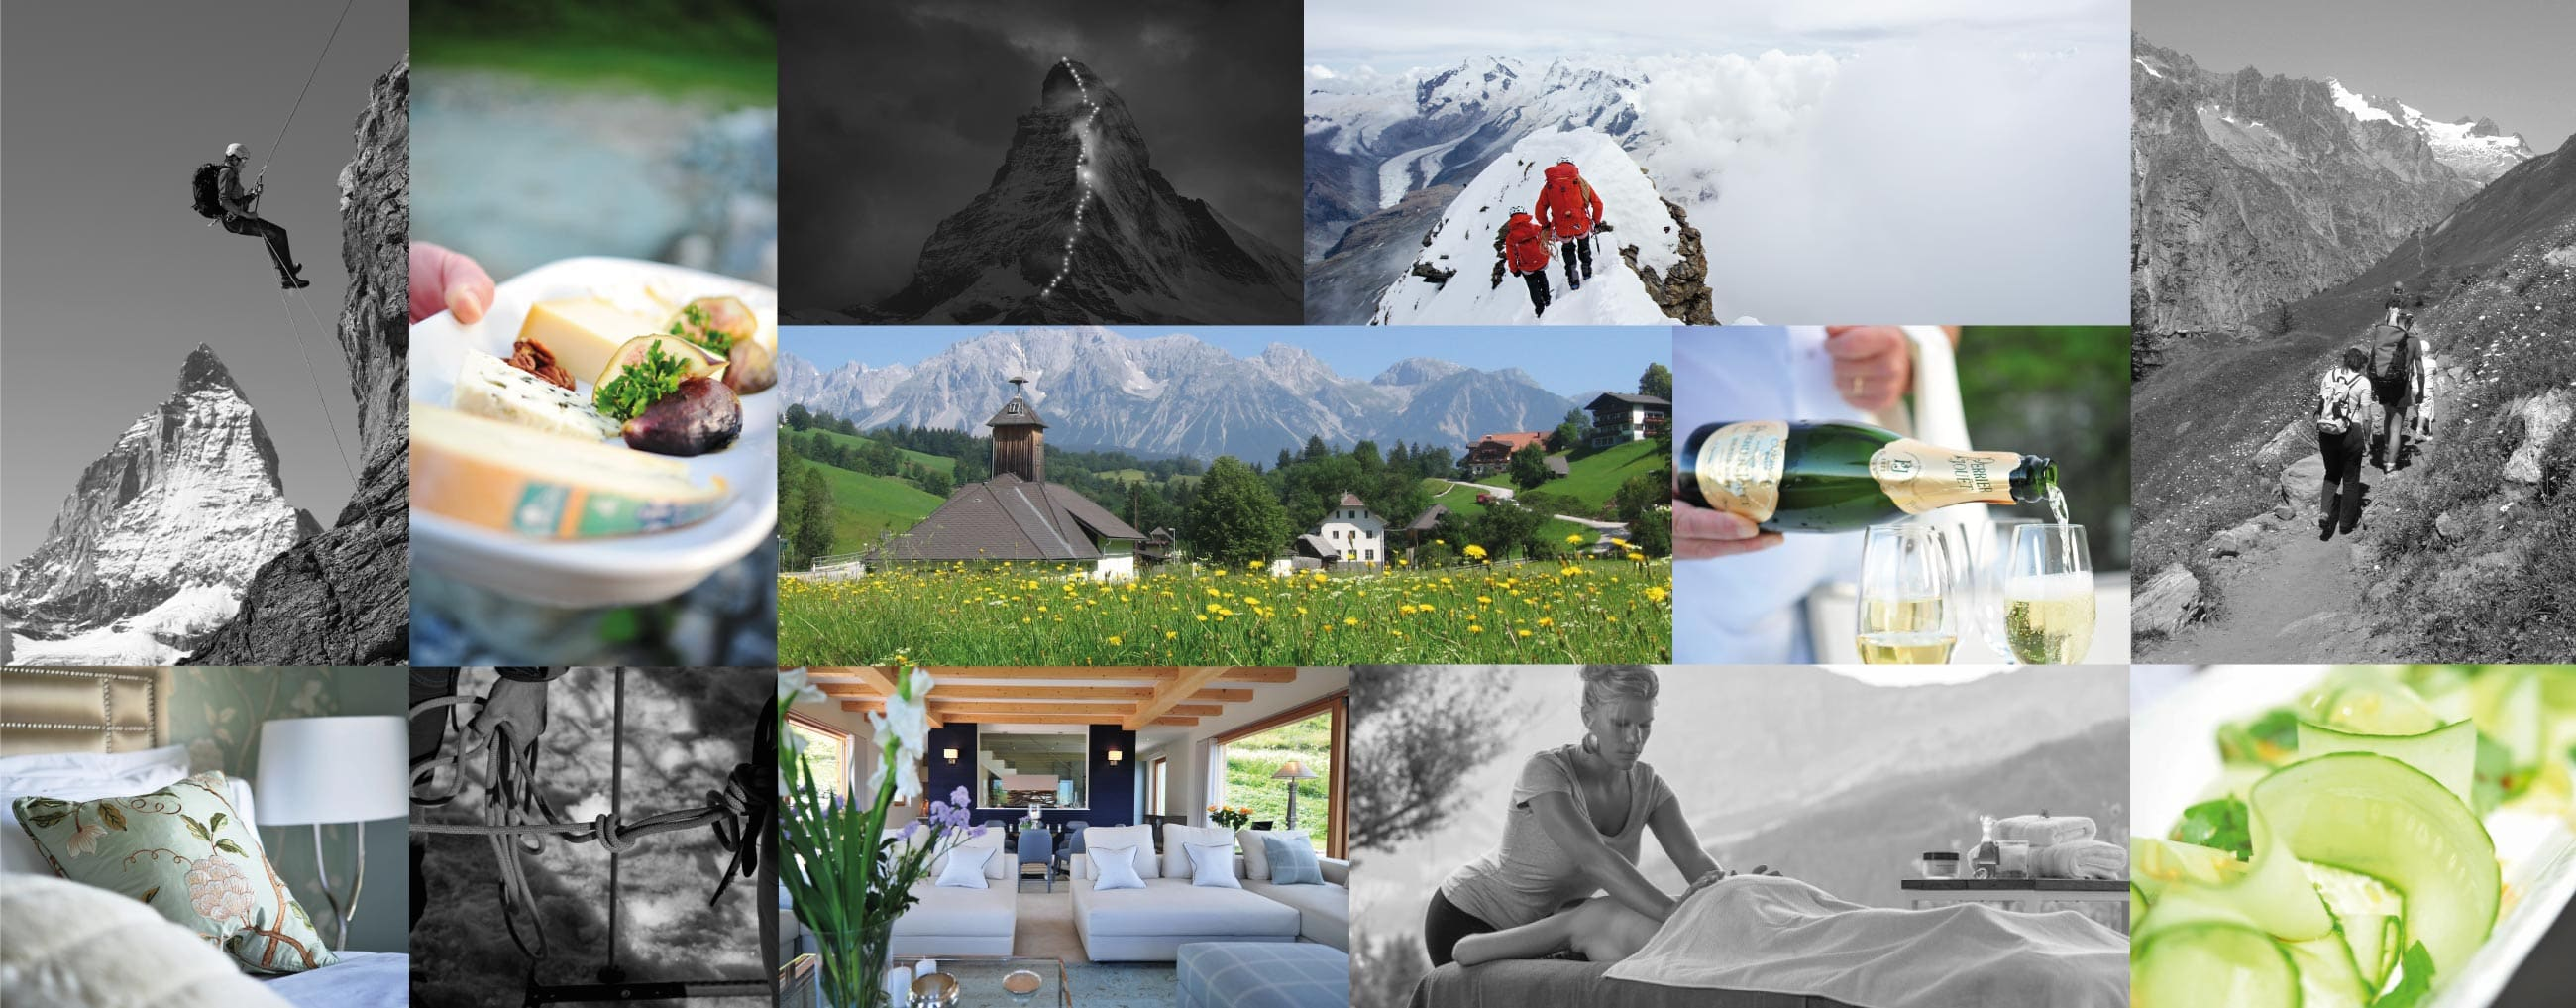 Luxury Alpine Vacation Collage